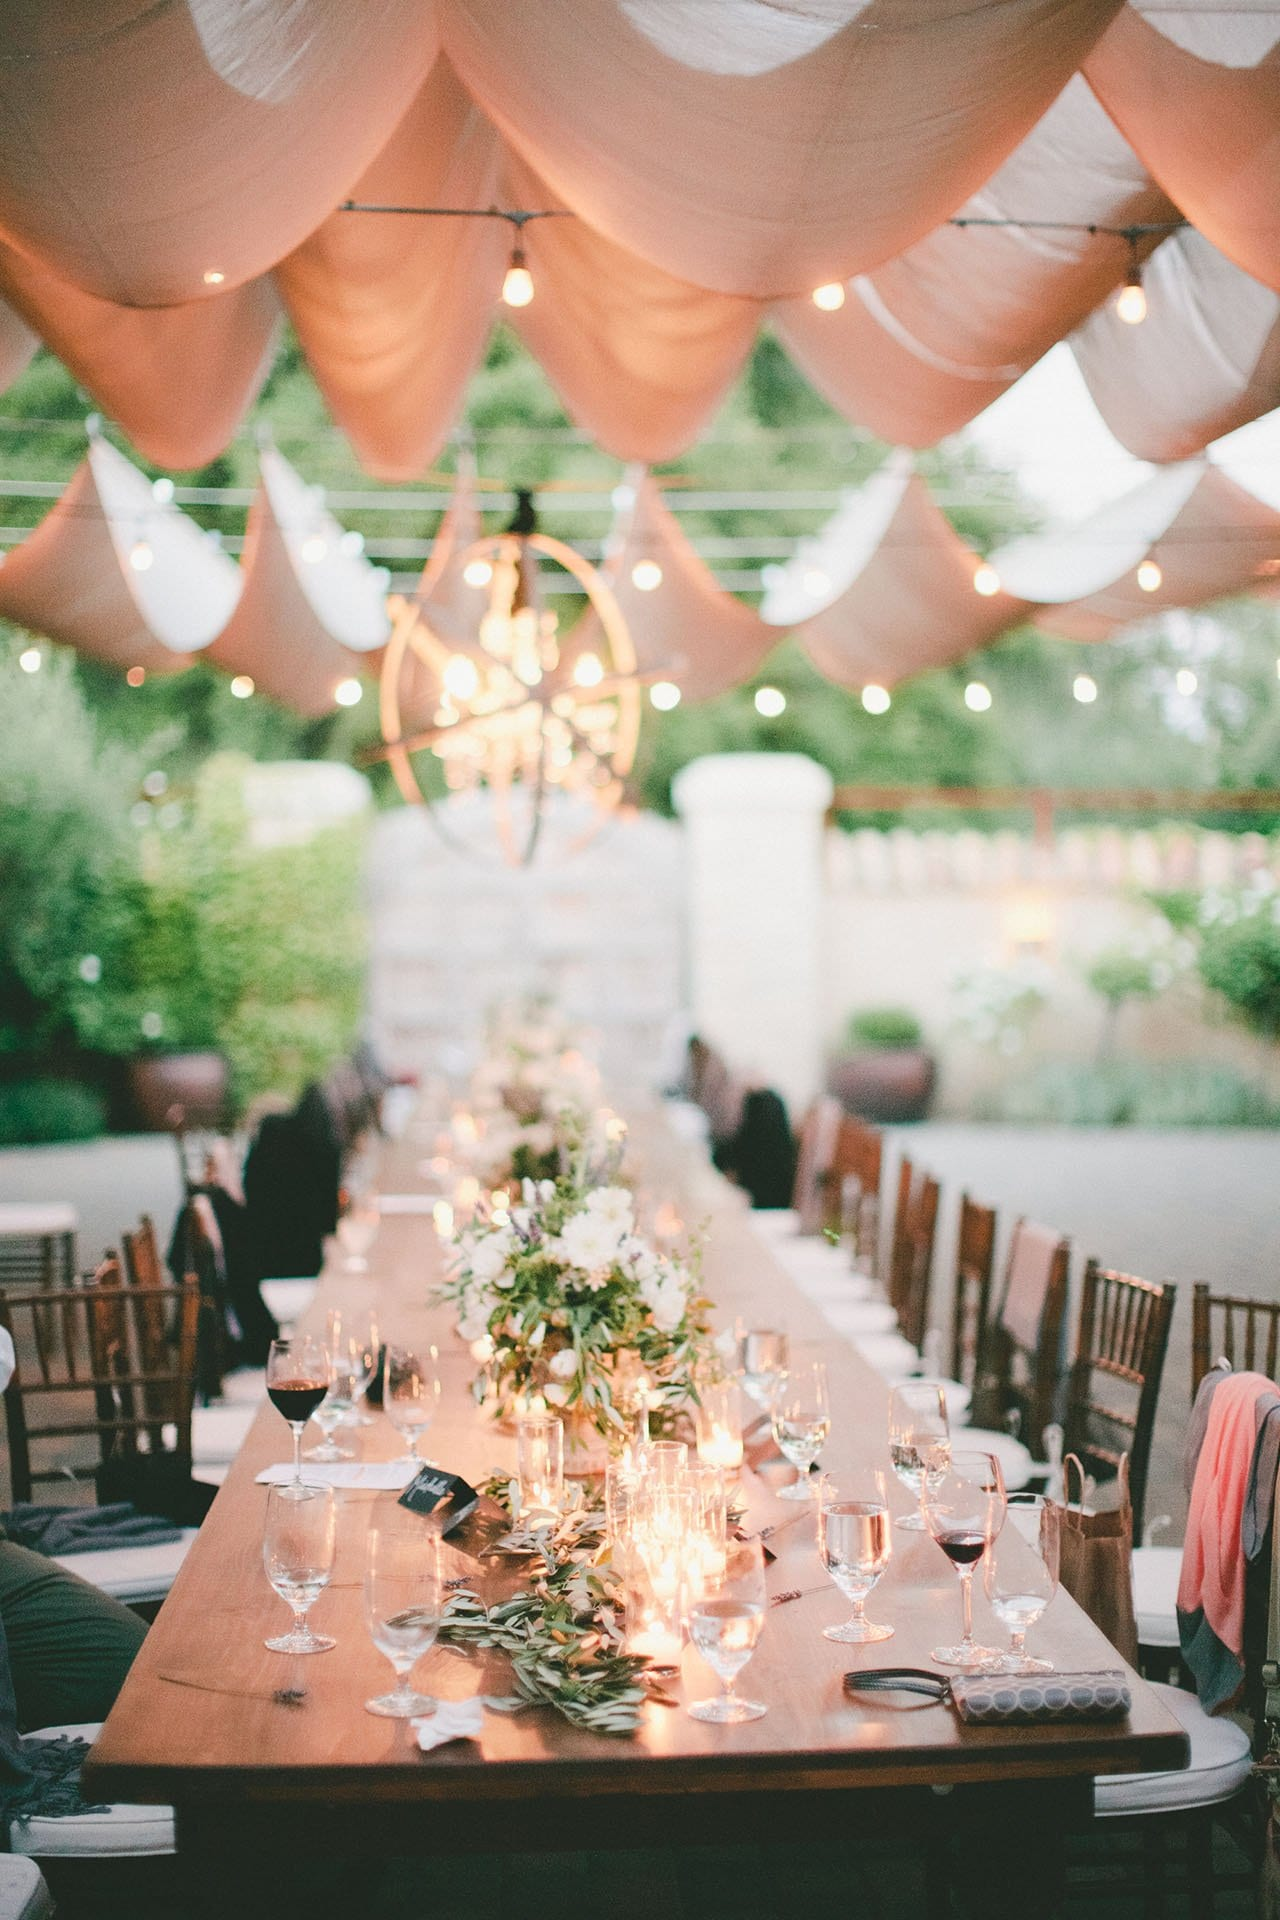 Seven Branches Venue and Inn - Dining Courtyard with long wooden table and chairs with lights flowers and wine glasses